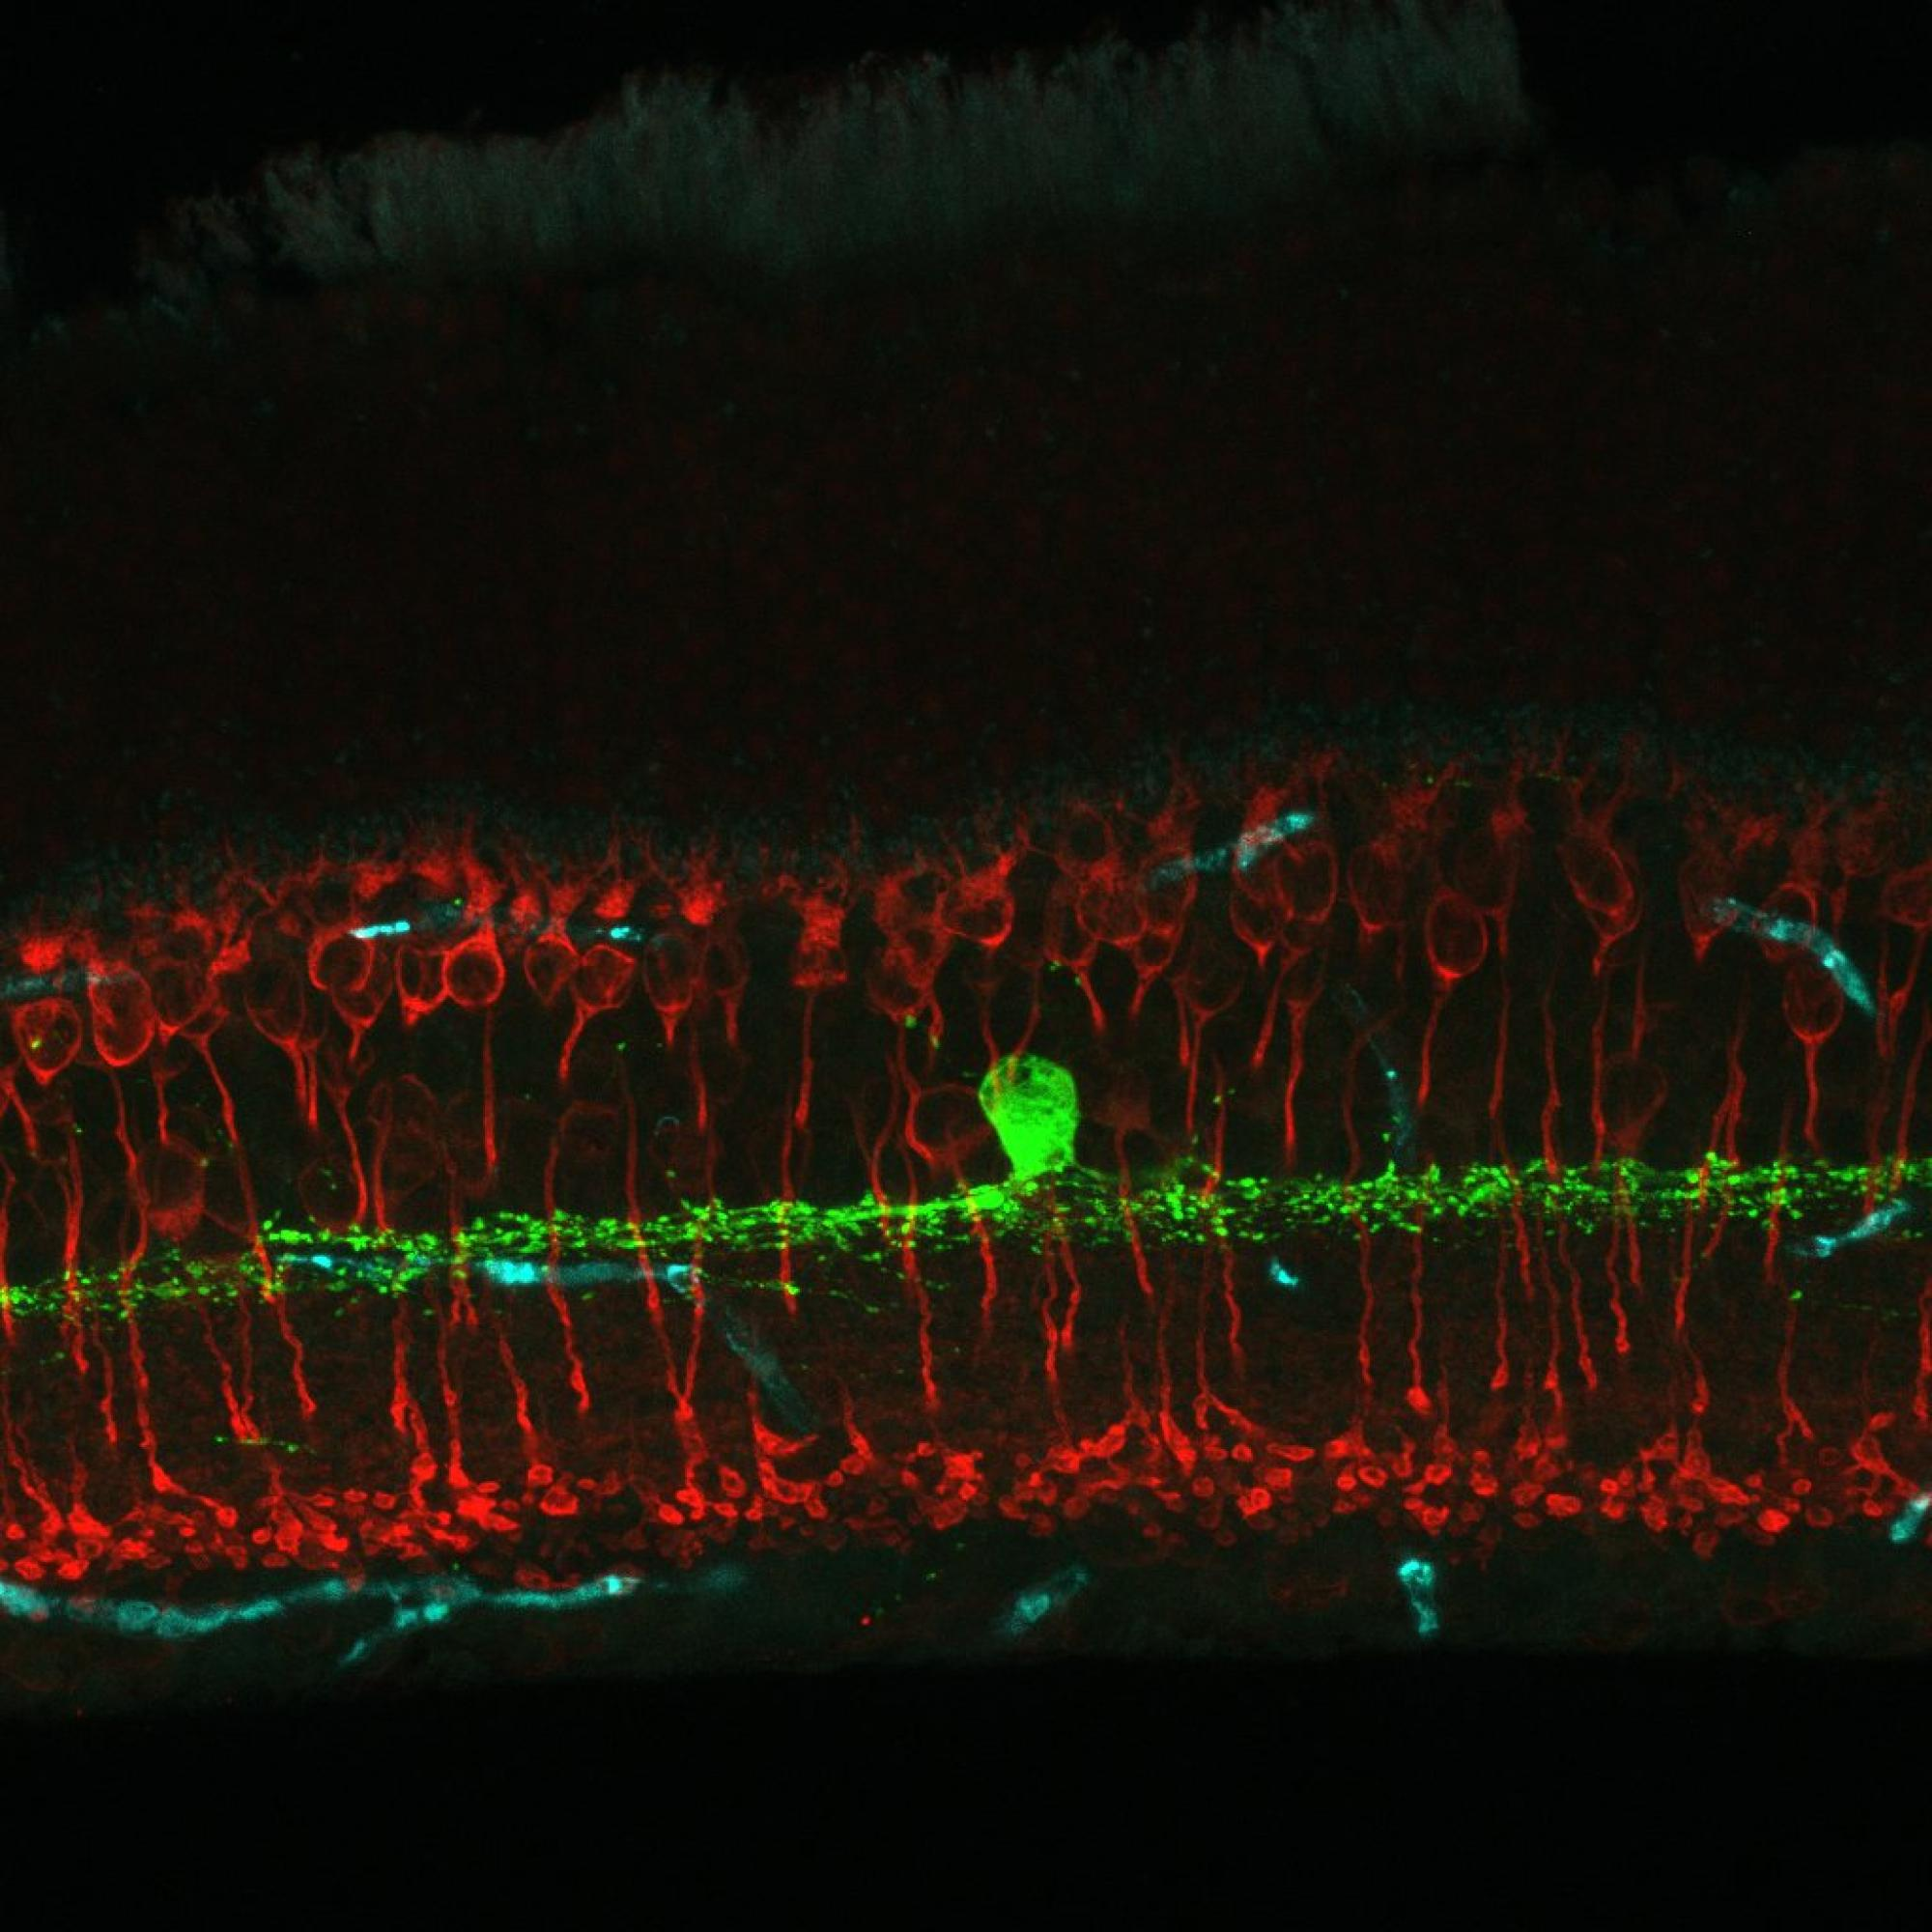 This image of a slice through the retina, taken in the Eggers lab, shows the cells that produce dopamine in the retina, labeled in green.